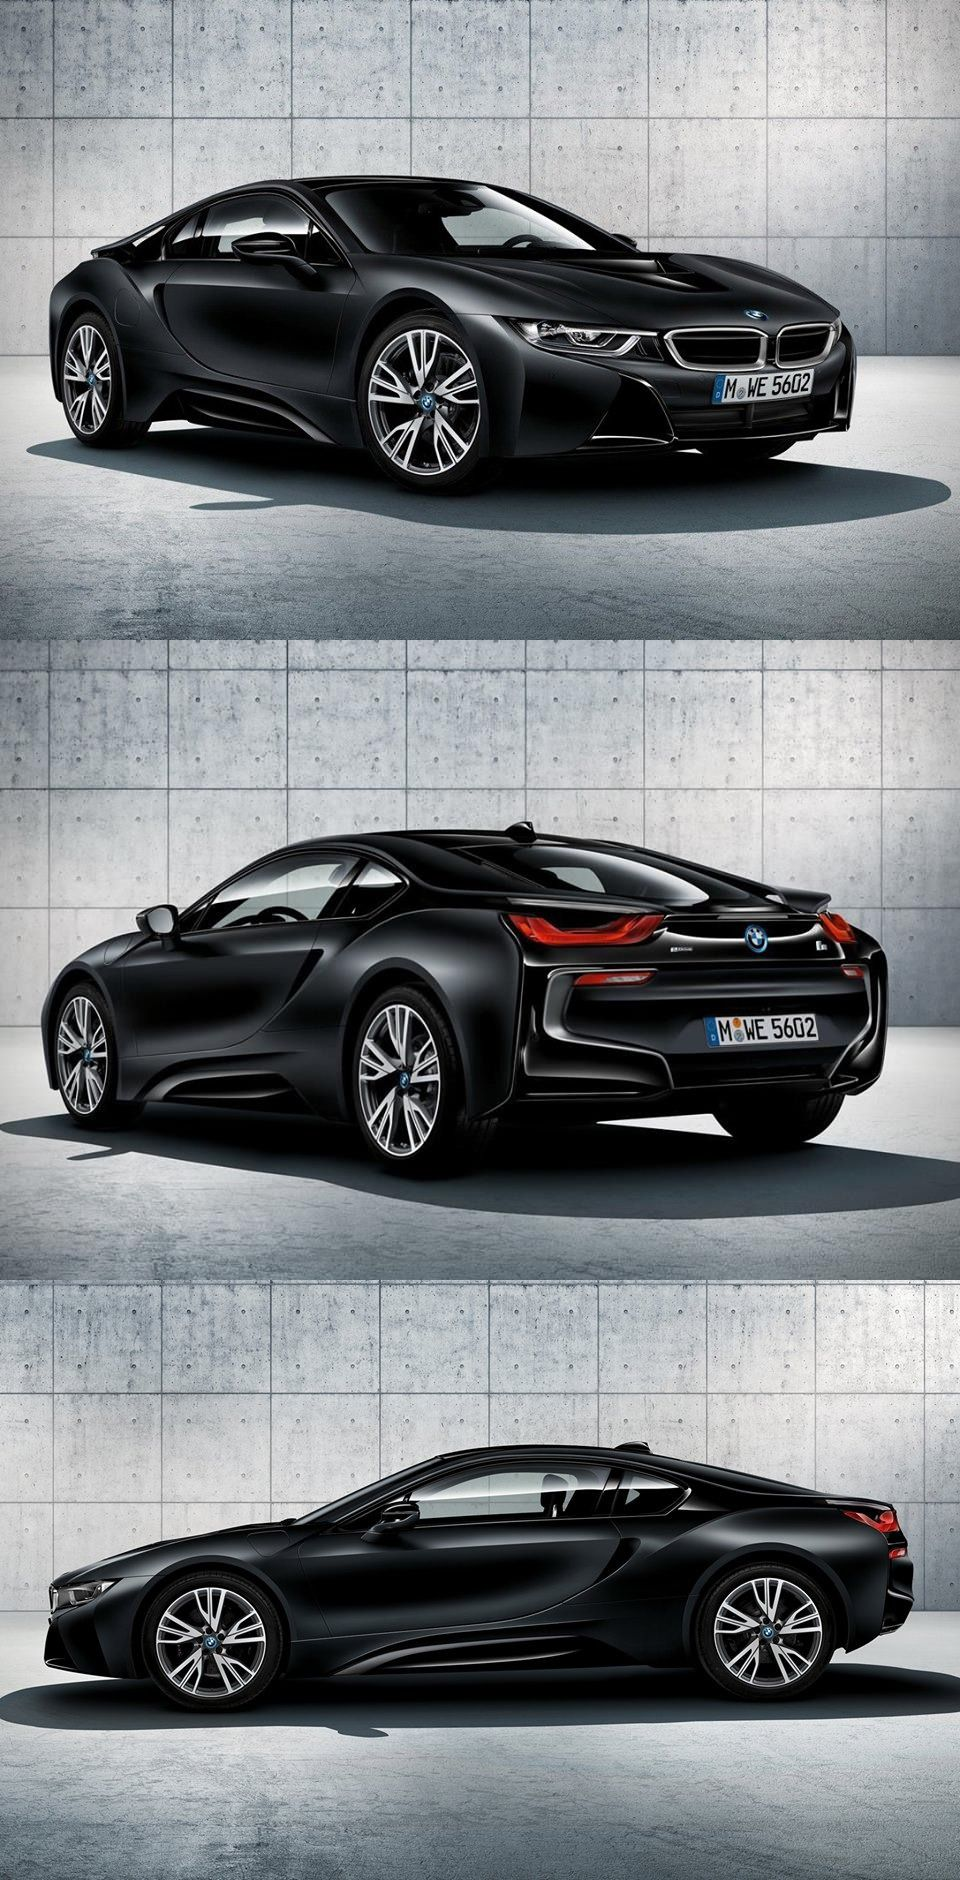 The Bmw I8 Protonic In Frozen Black Limited Edition And Will Be